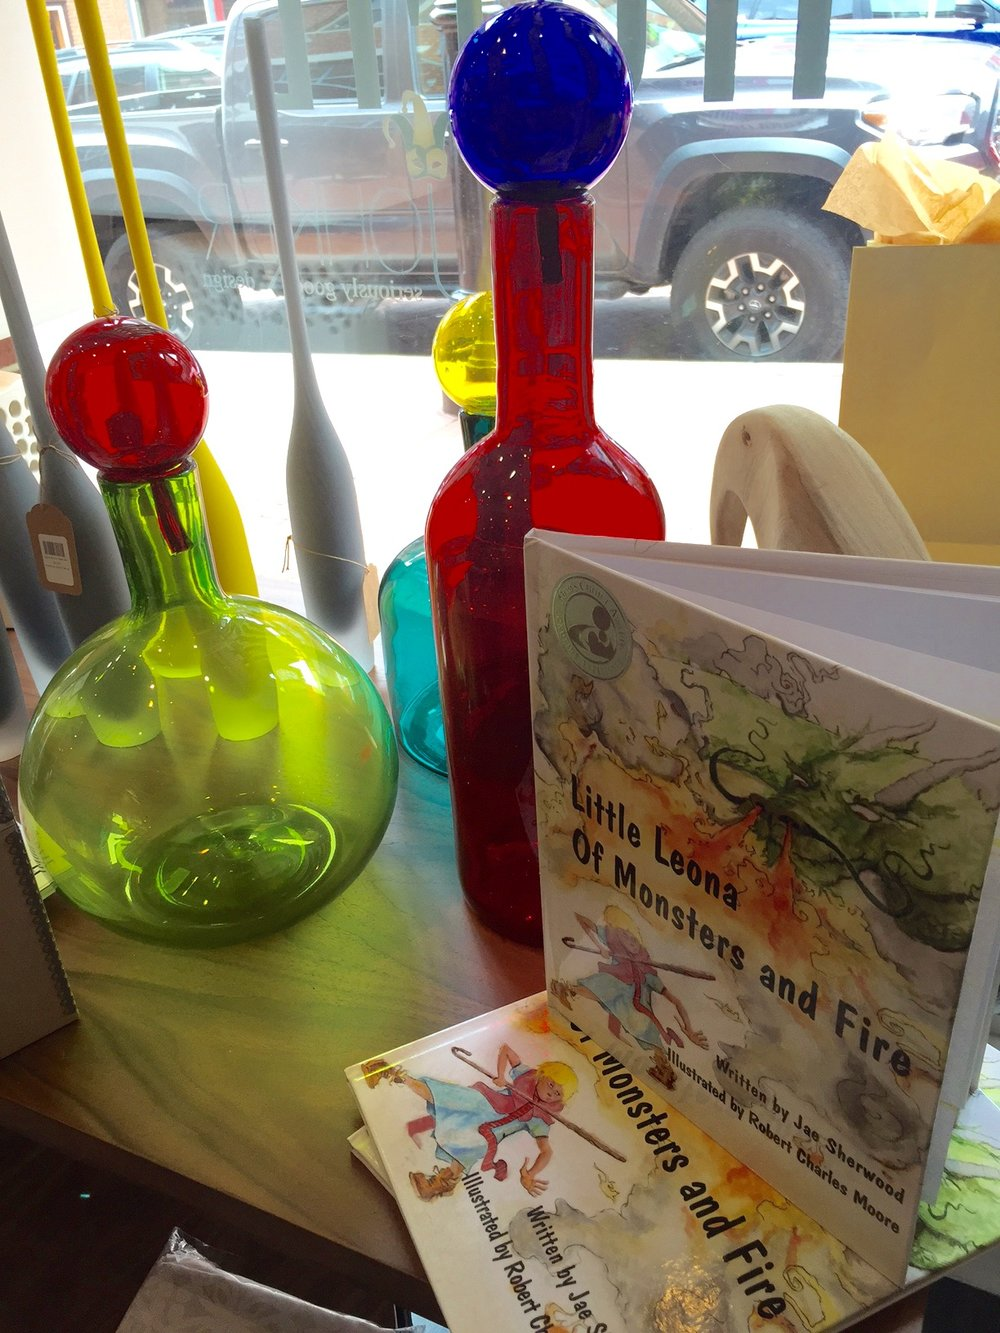 My book shown at Home by Johker Design in downtown Annapolis.